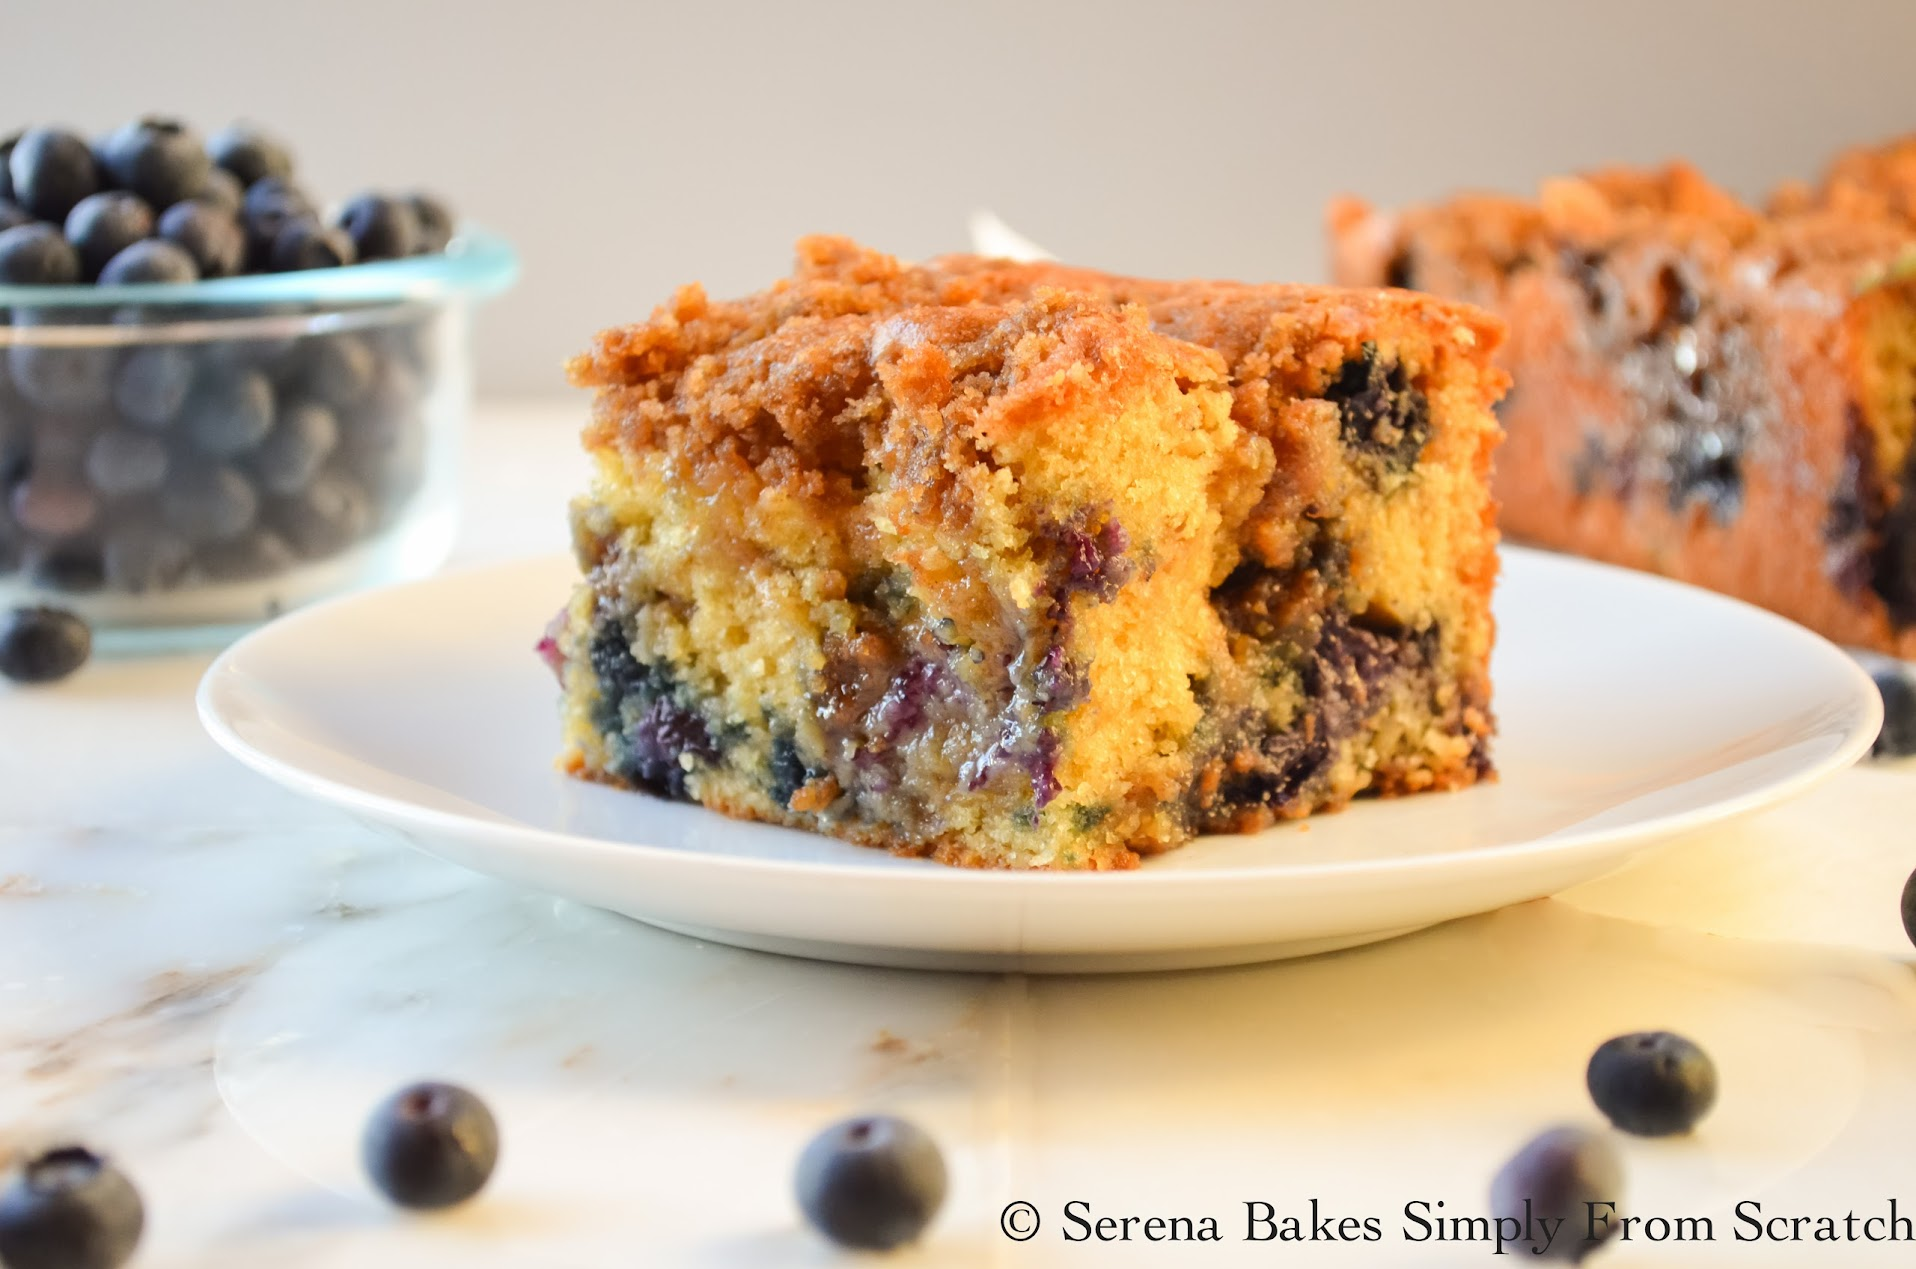 Blueberry Cinnamon Swirl Crumb Coffeecake by Serena Bakes Simply From Scratch